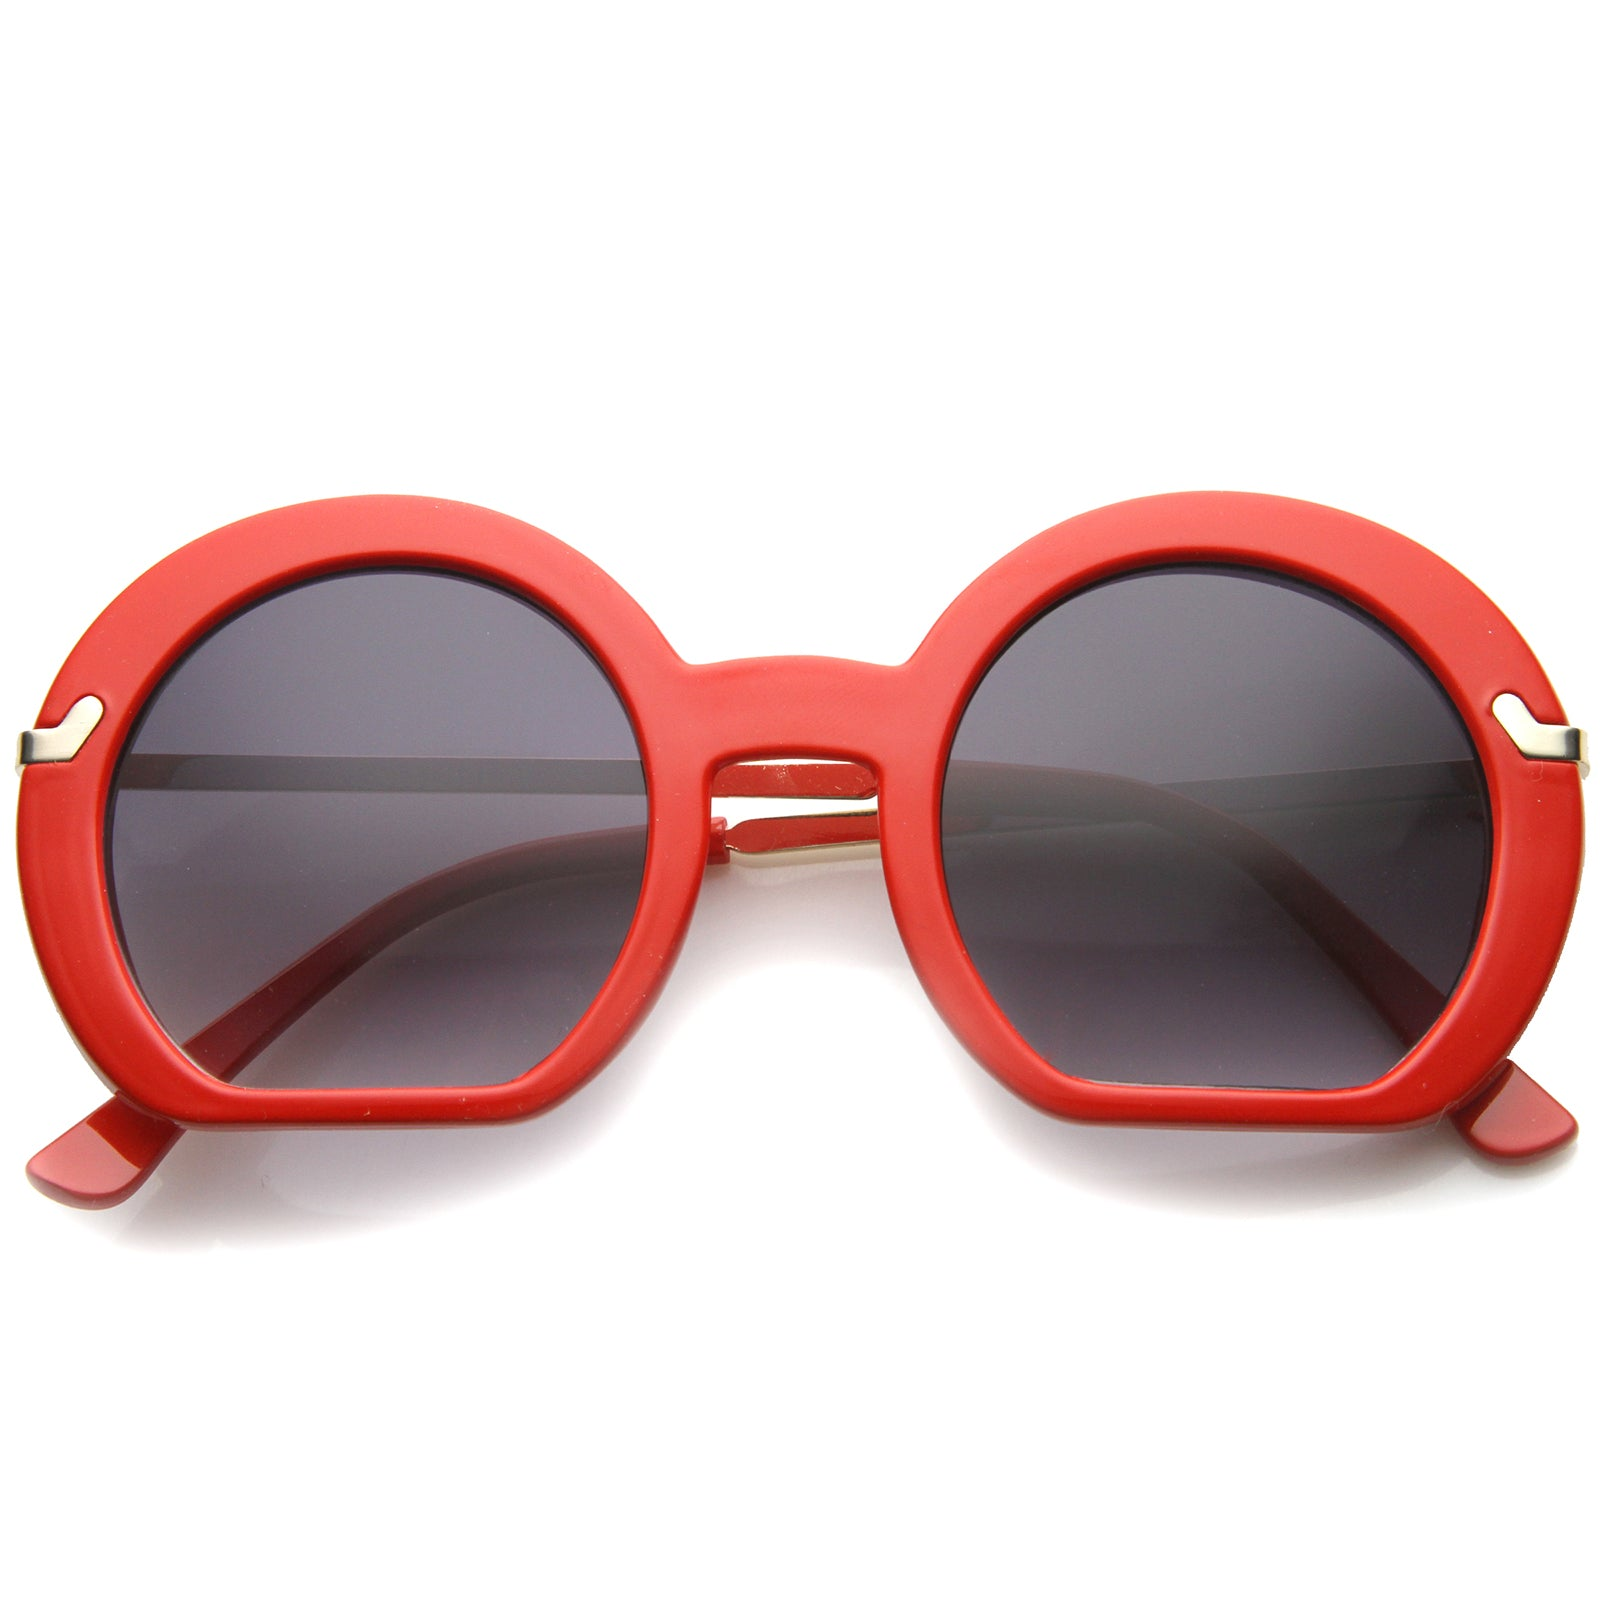 Women's High Fashion Flat Bottom Oversize Round Sunglasses 50mm - sunglass.la - 13